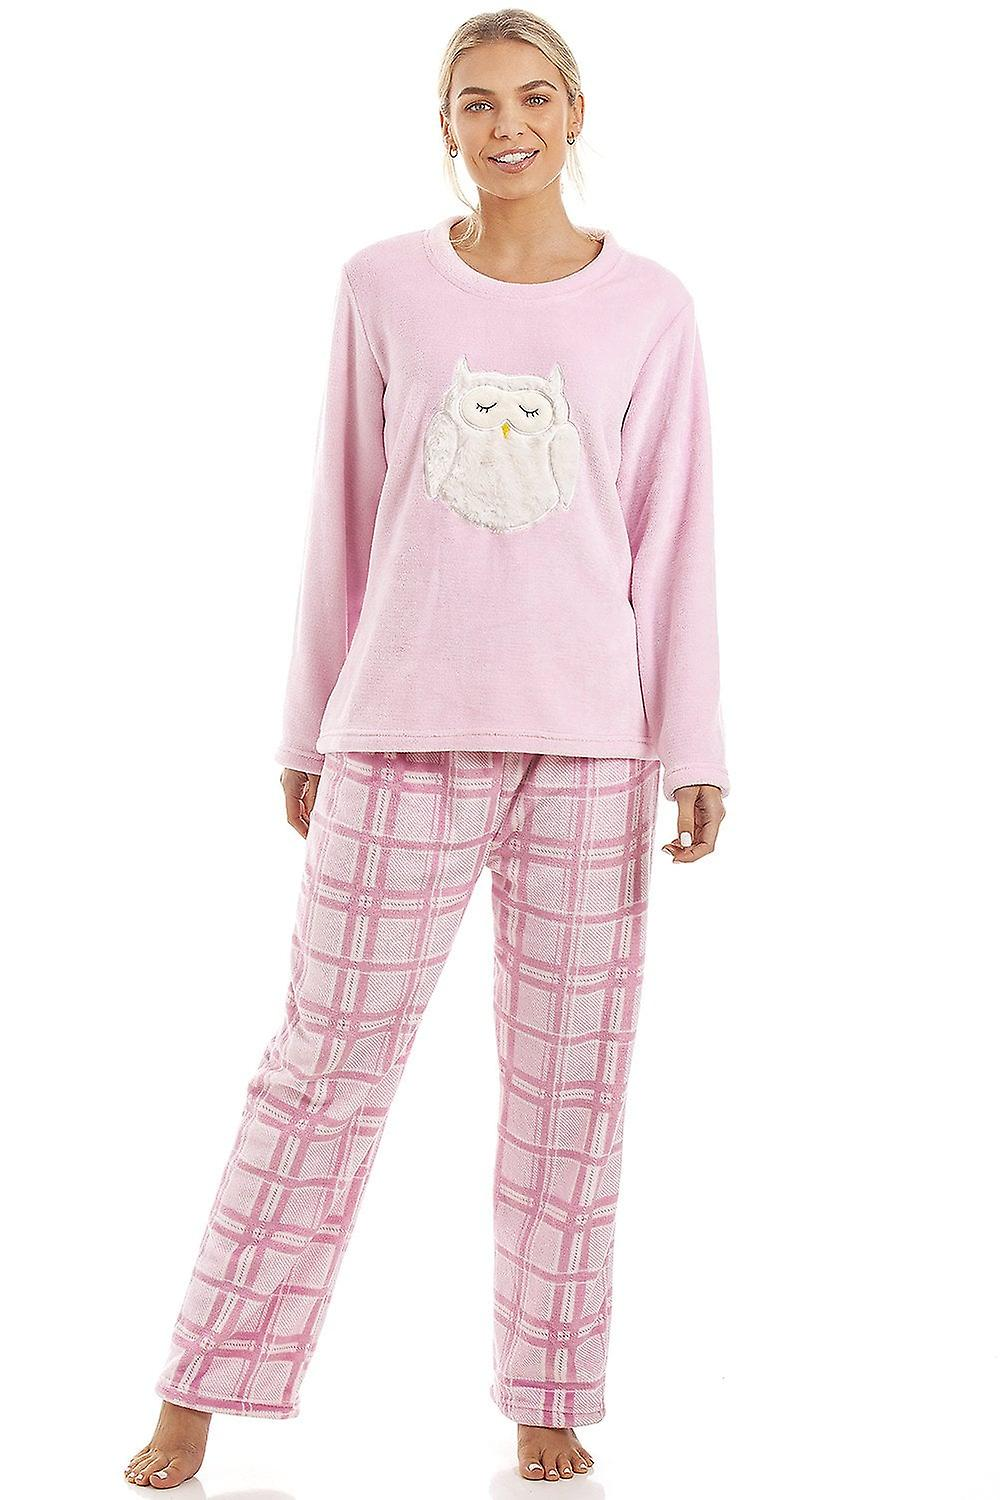 Camille Pink Checkered Supersoft Fleece Owl Character Pyjama Set